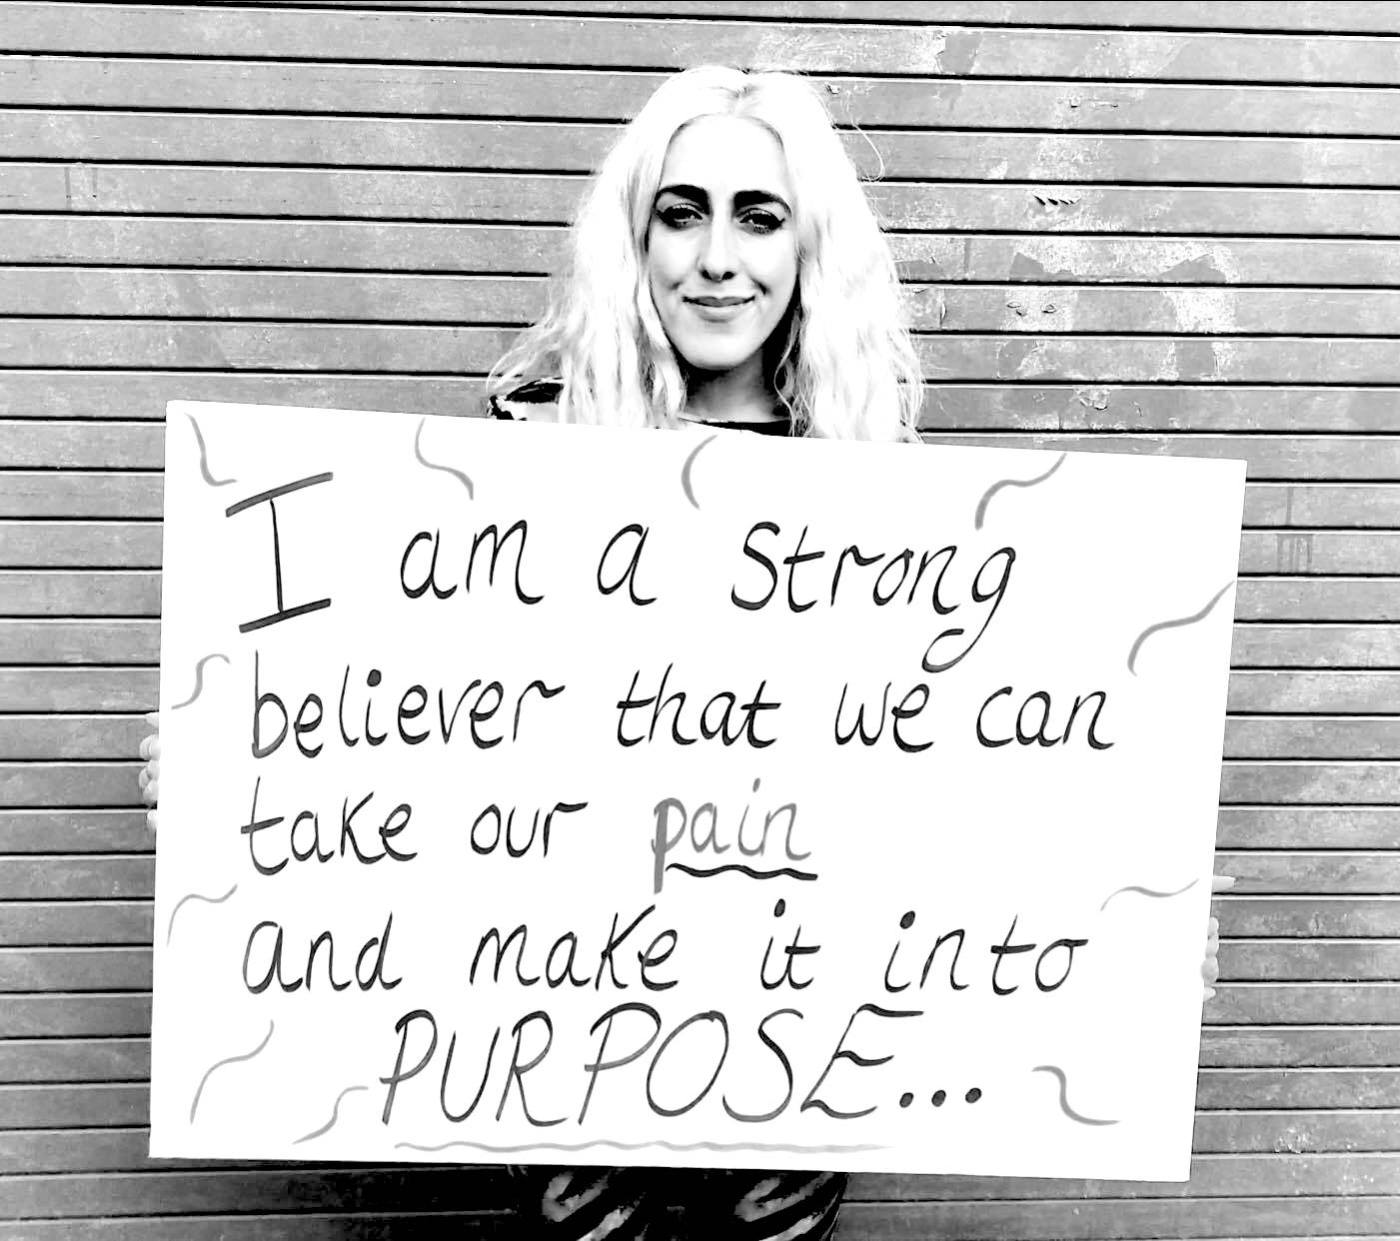 """A greyscale image of Miranda Arieh, a white woman, holding a sign that reads """"I am a strong believer that we can take our pain and make it into purpose."""""""